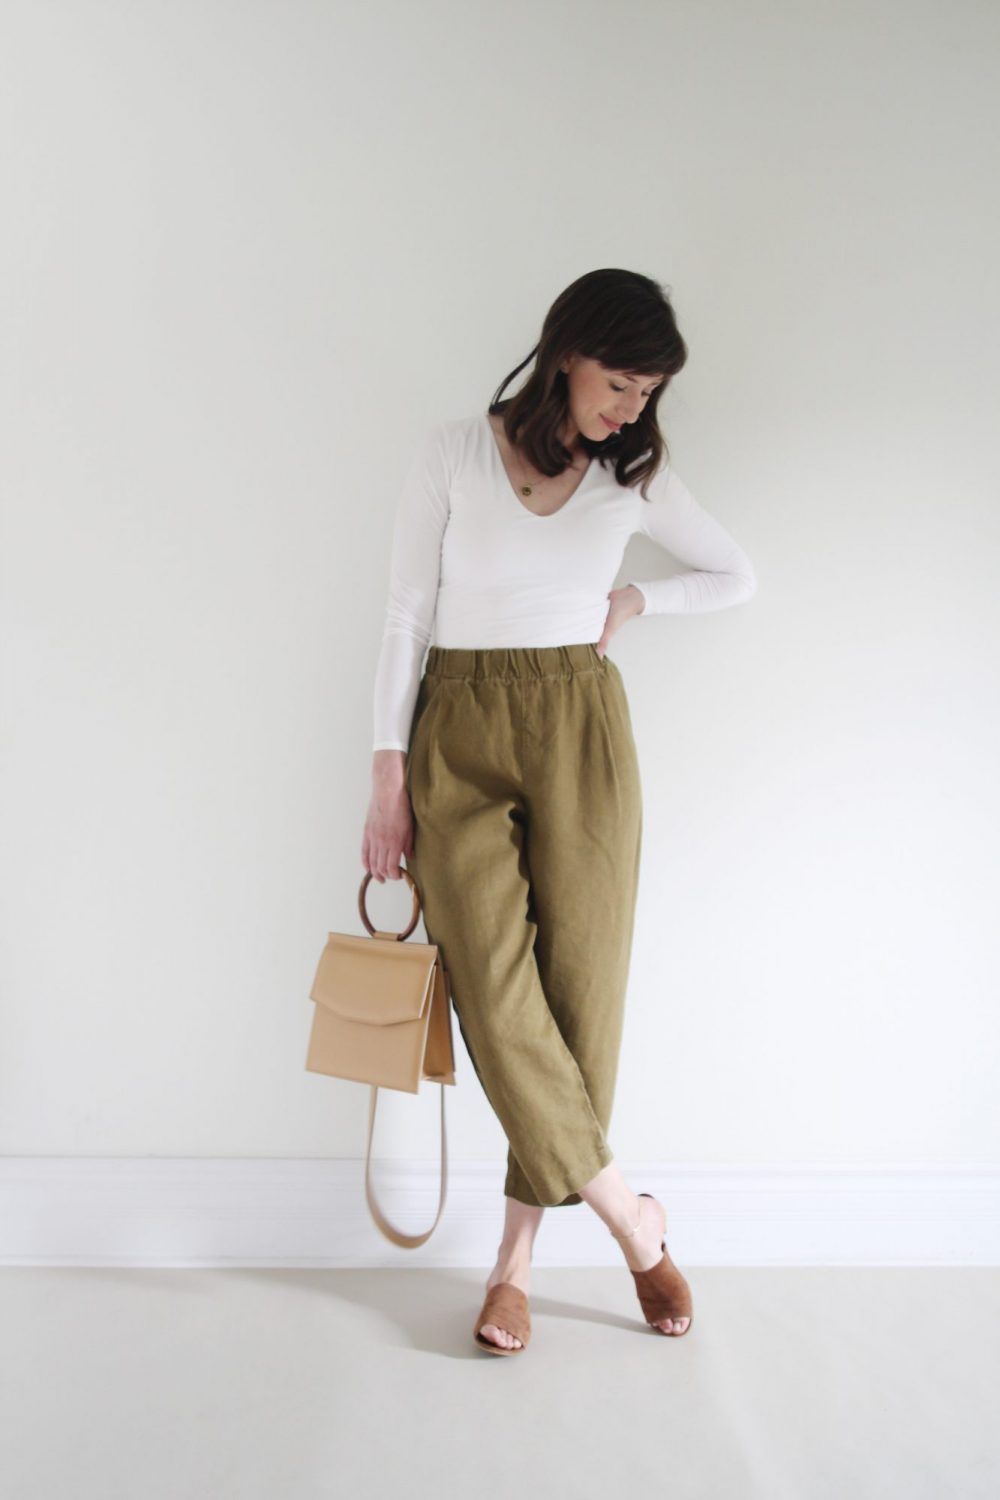 Style Bee - August Outfits Look 1 - White Bodysuit + Olive Andy Pant + Suede Slides + Structured Tan Bag